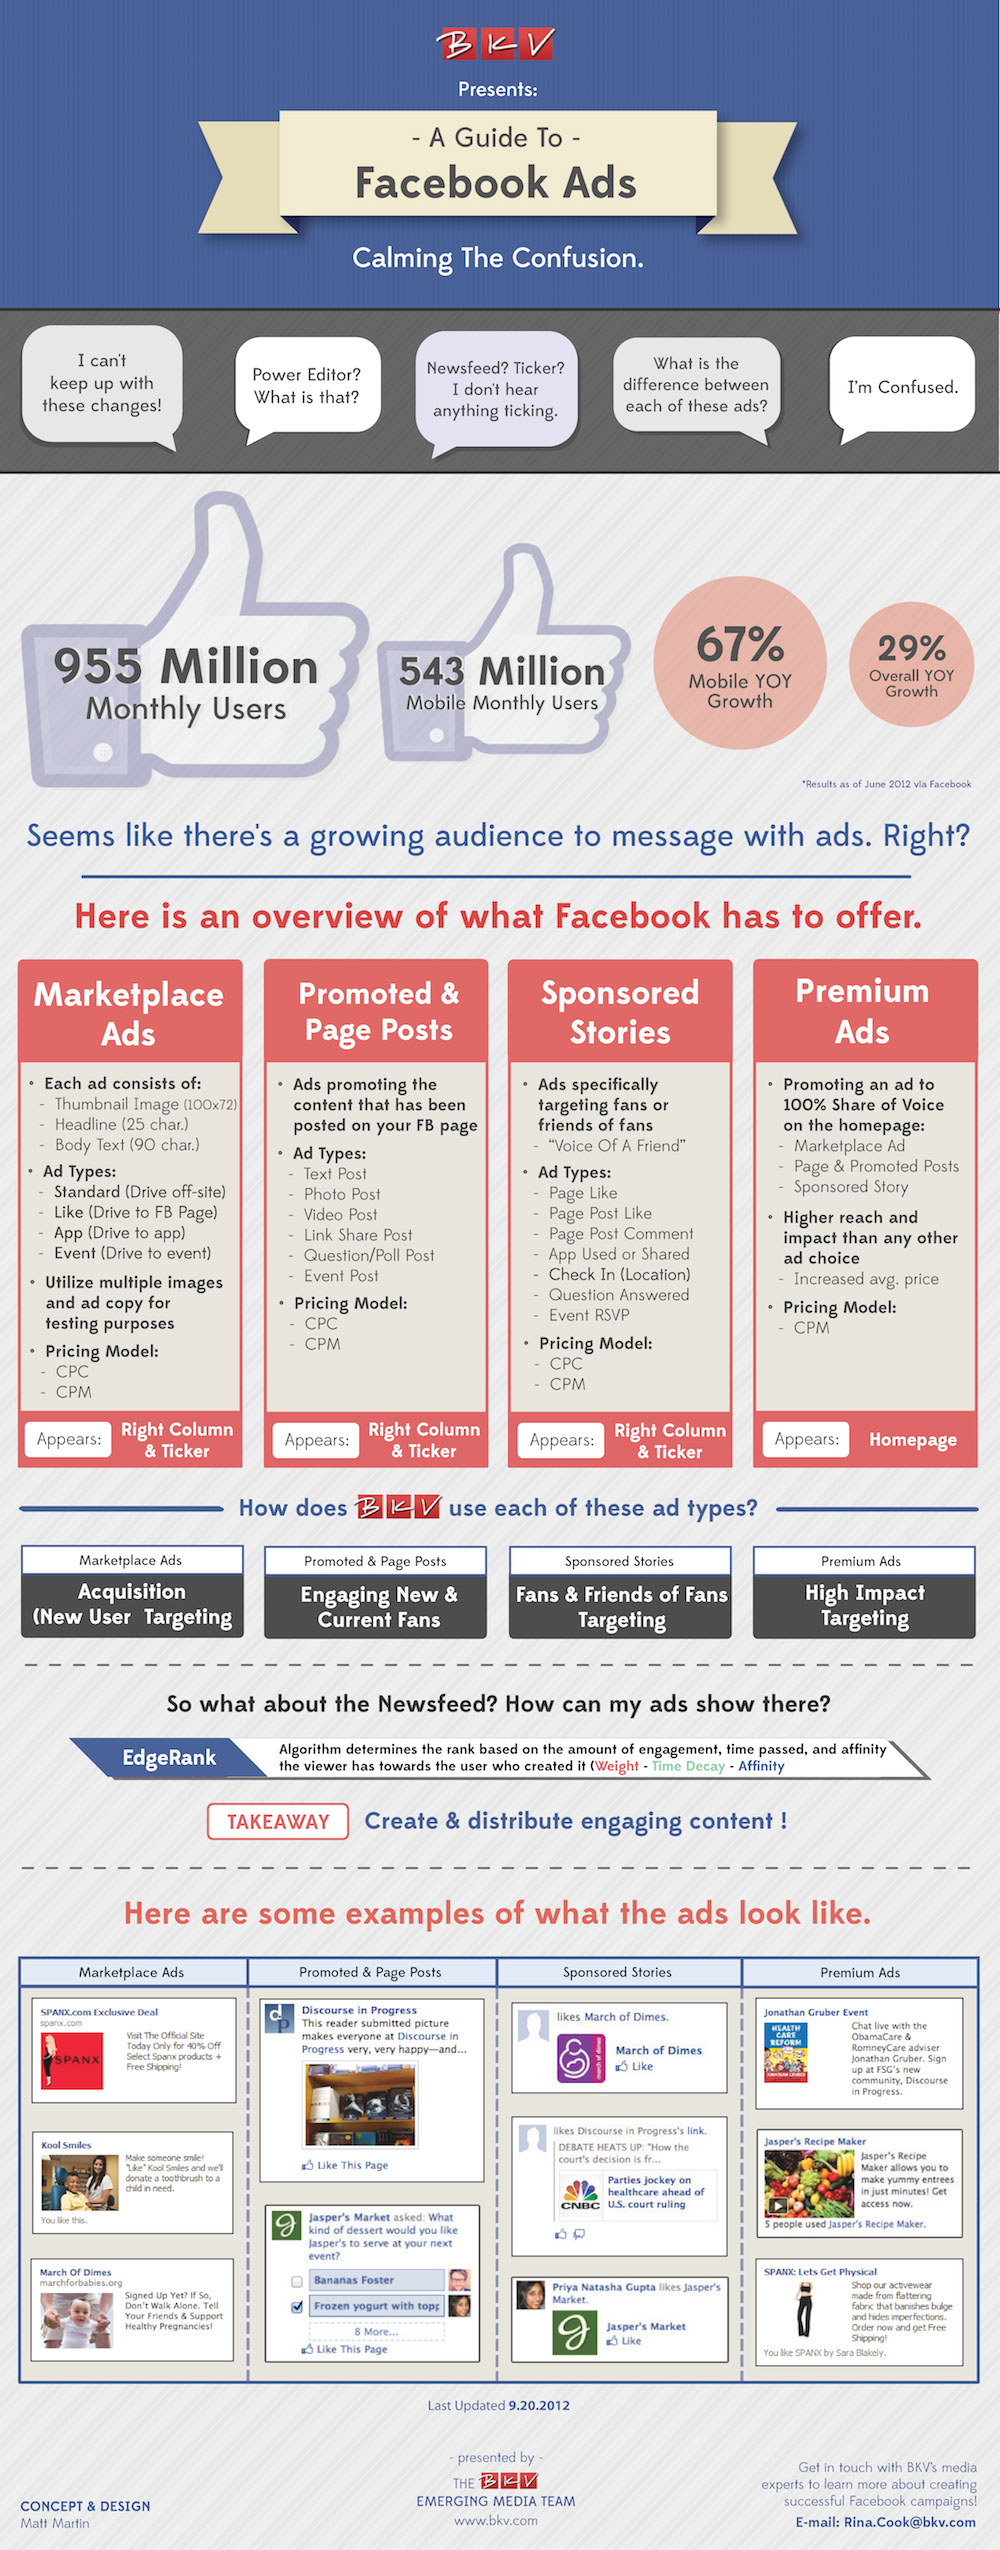 Facebook Ads Guide 2012-Infographic